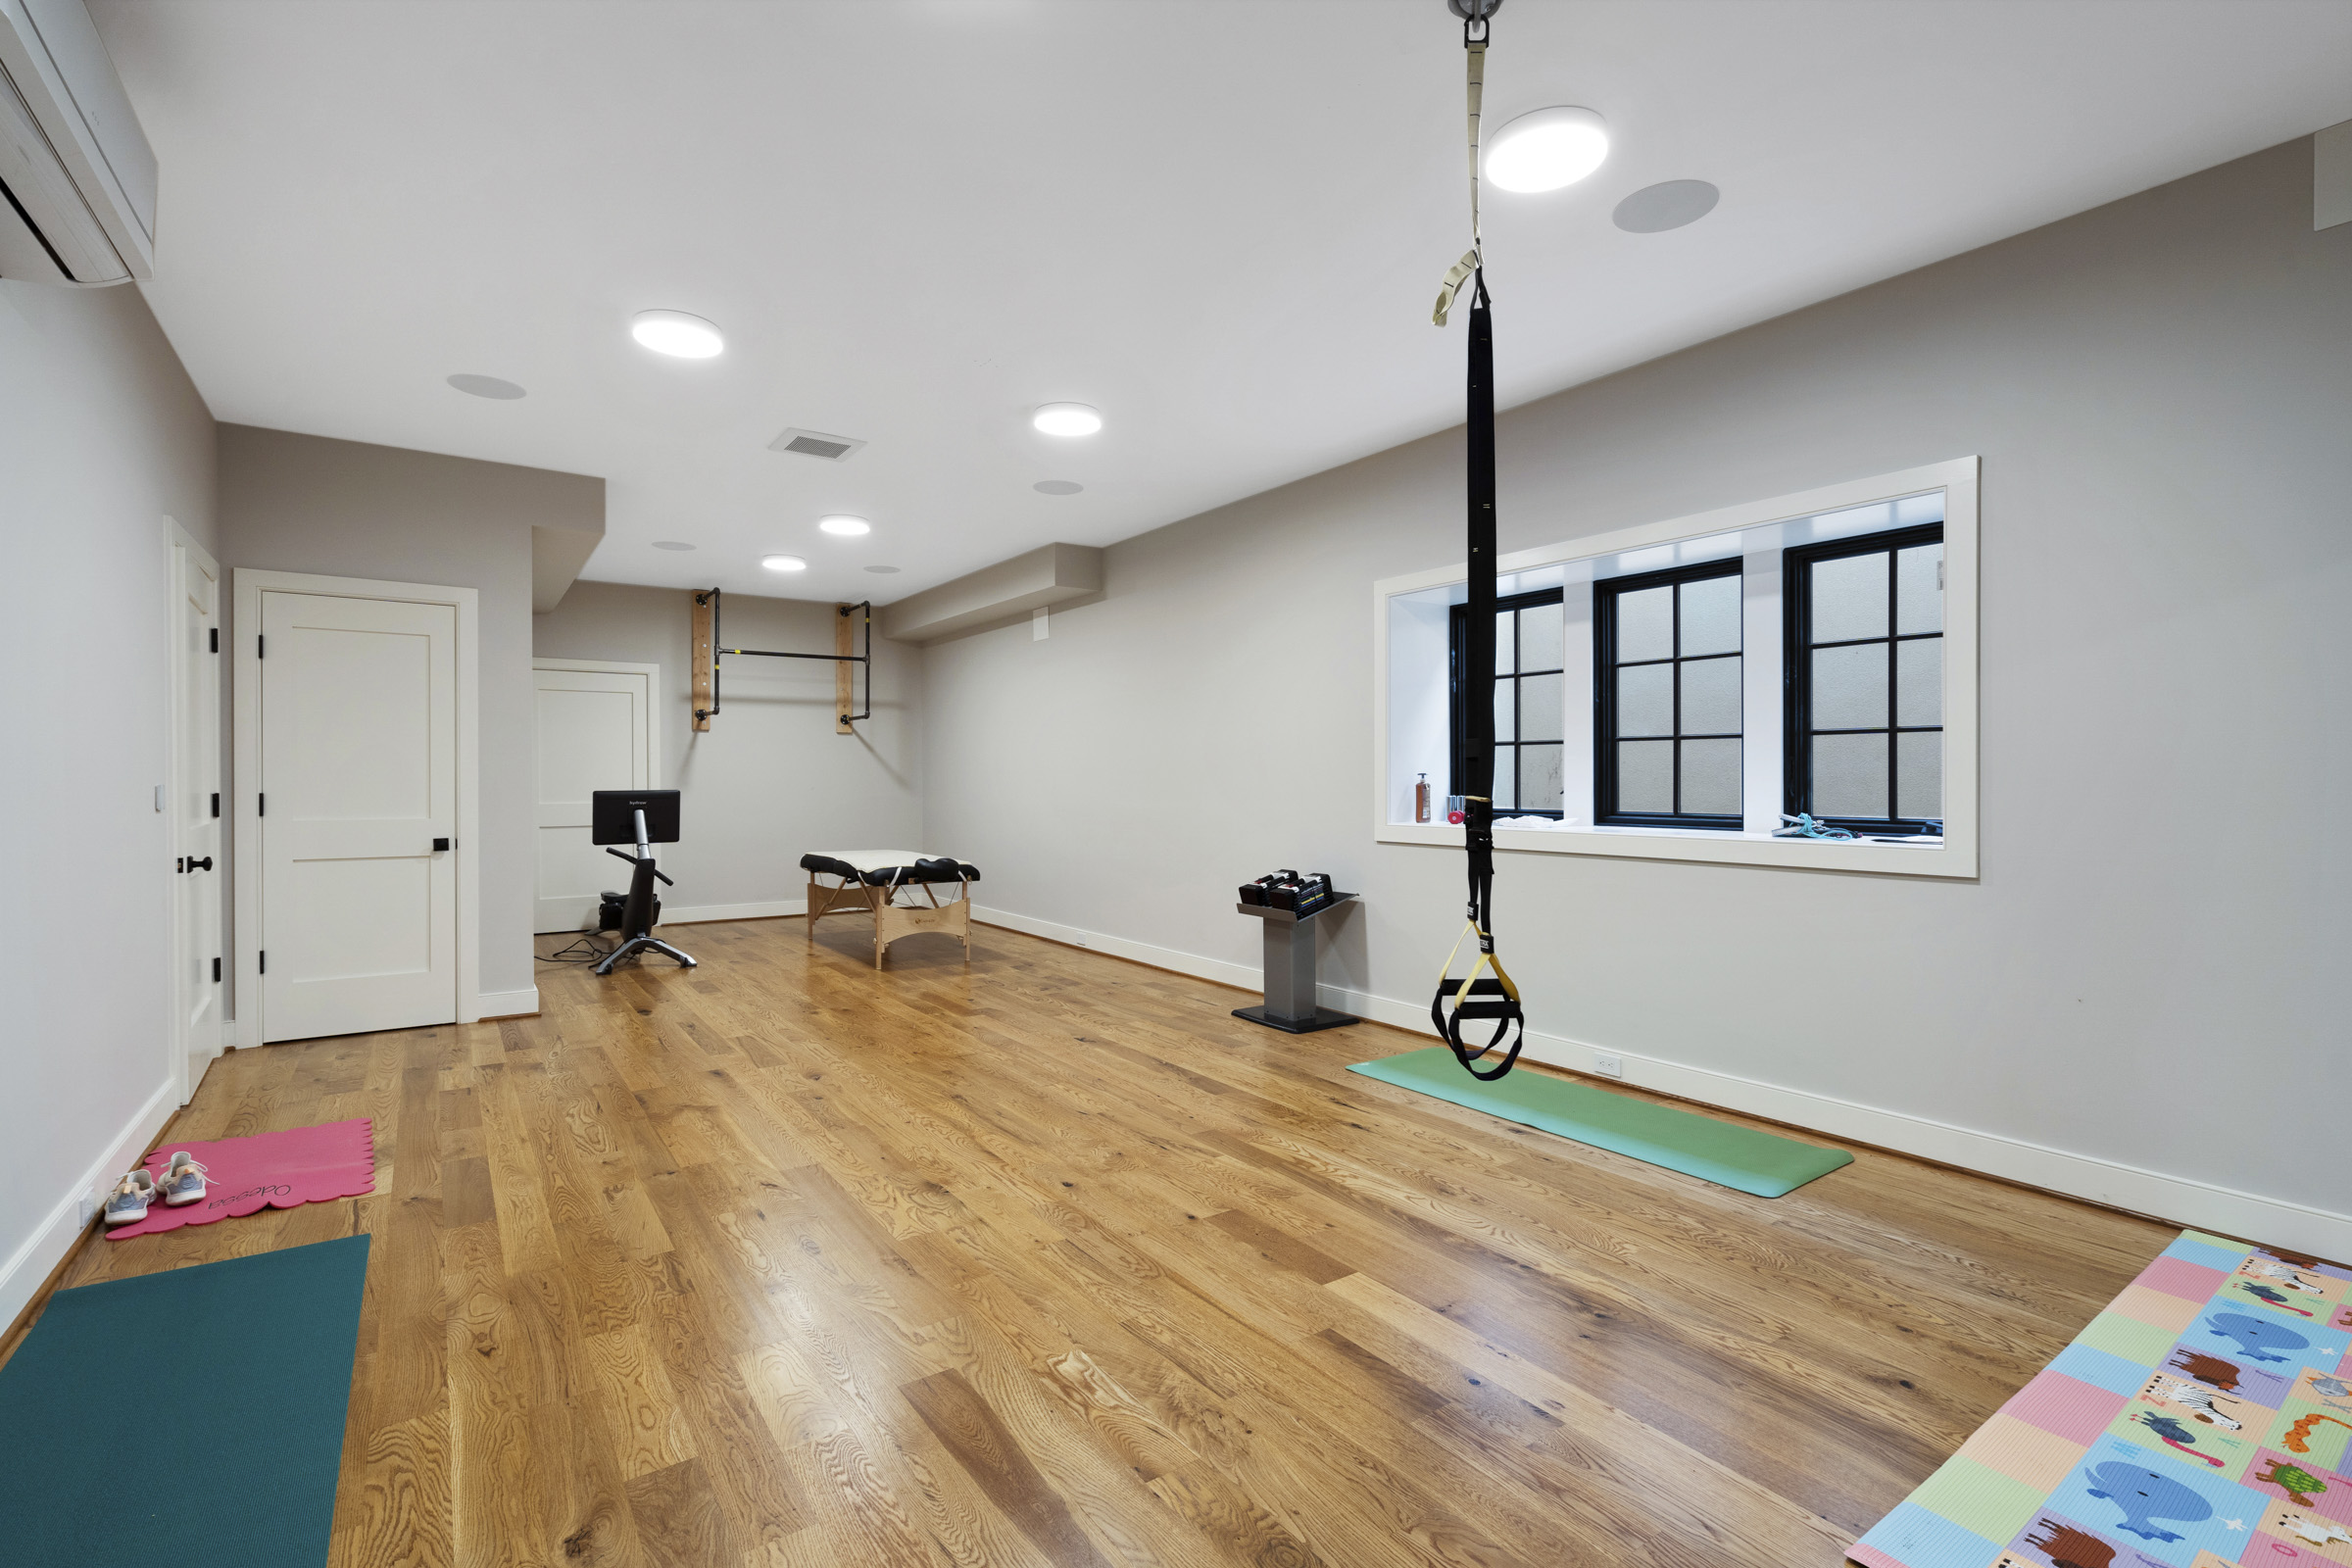 Smart home gym with bright white lighting